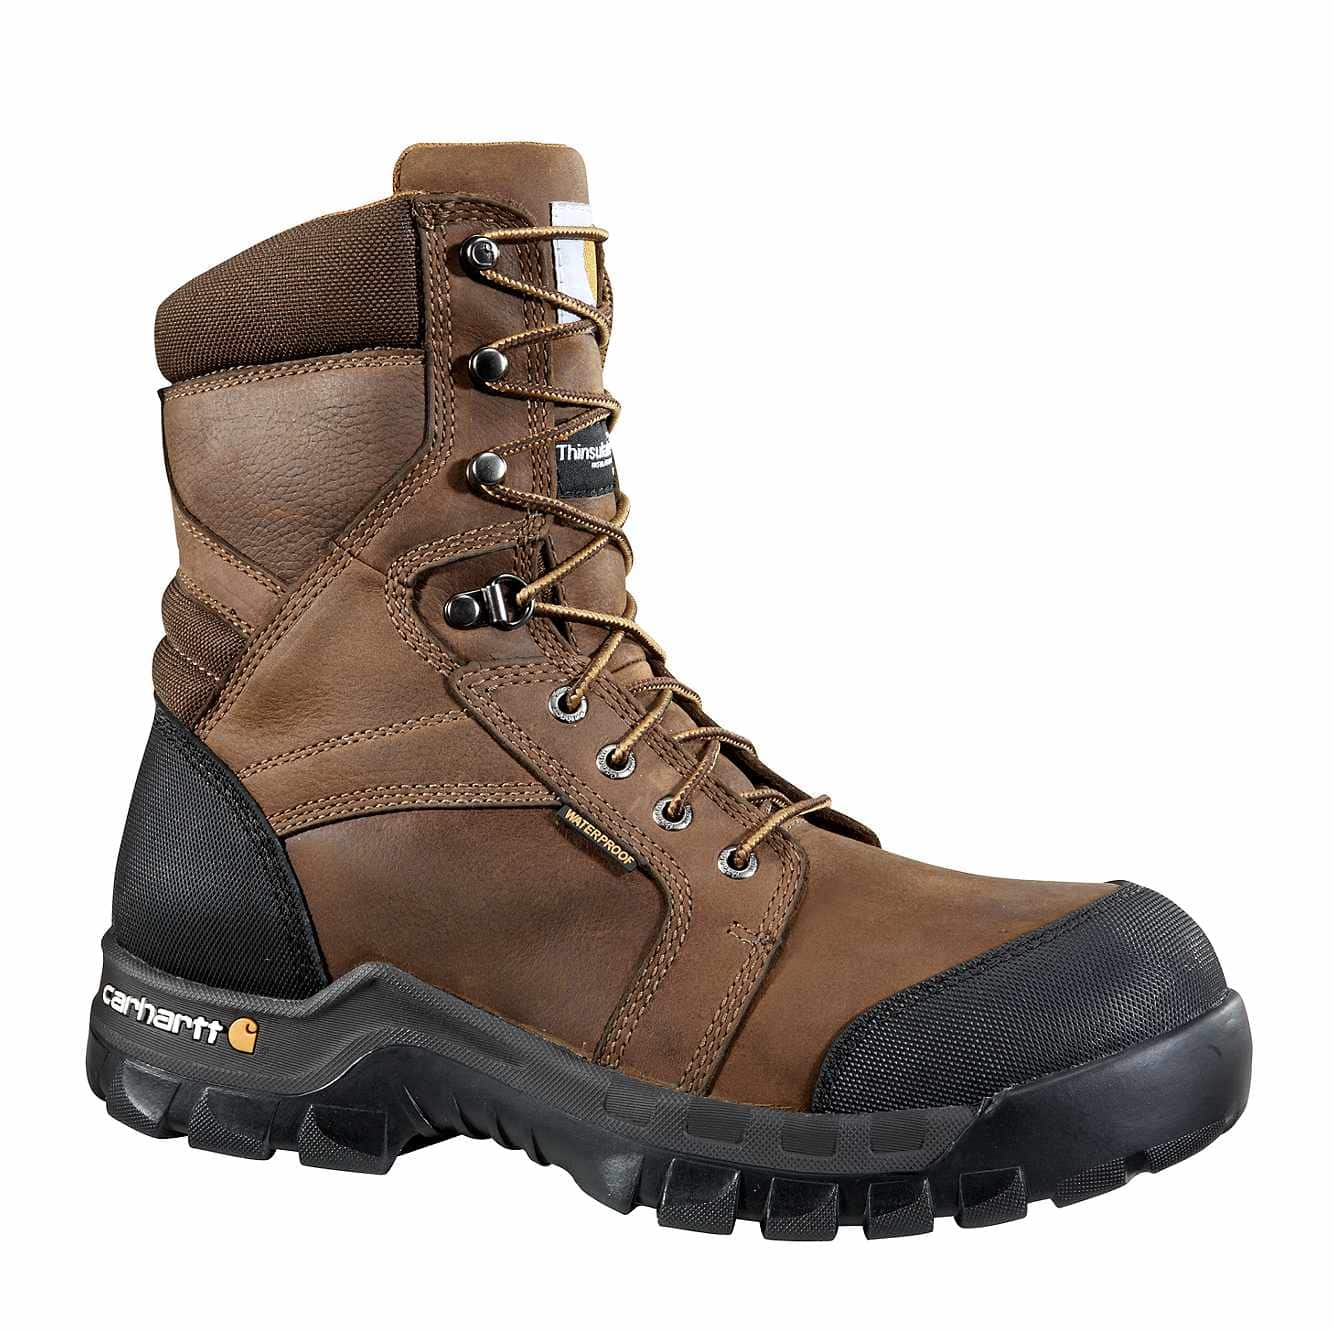 "Carhartt Rugged Flex 8"" Insulated Composite Toe Boot"